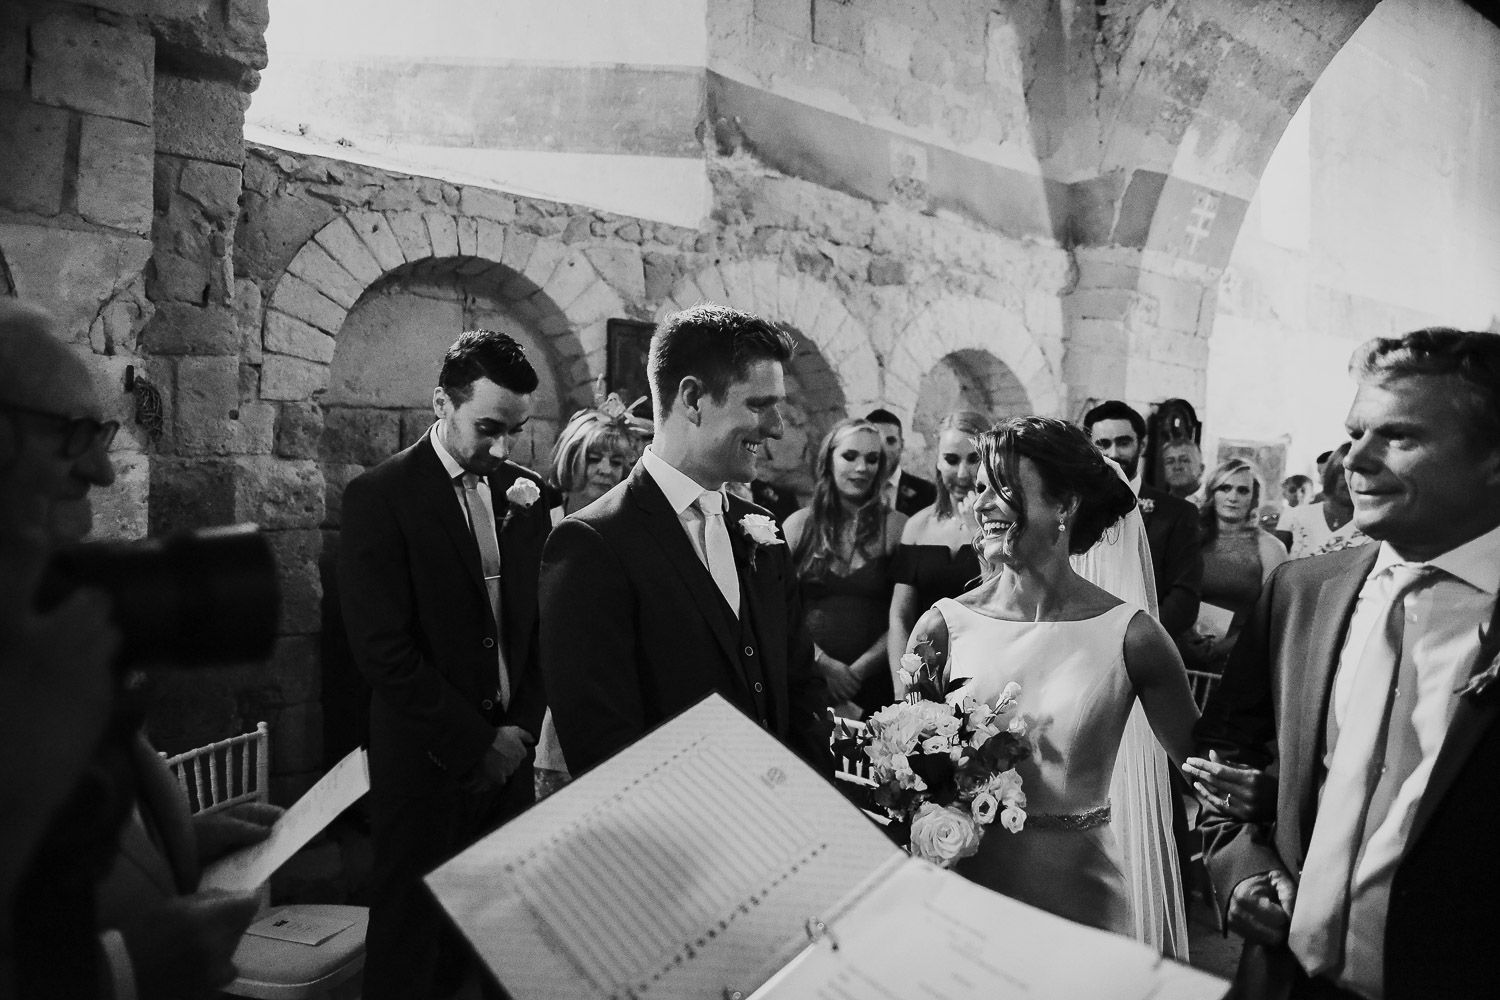 chateau_de_lisse_gers_gascony_south_west_france_family_wedding_katy_webb_photography_UK34